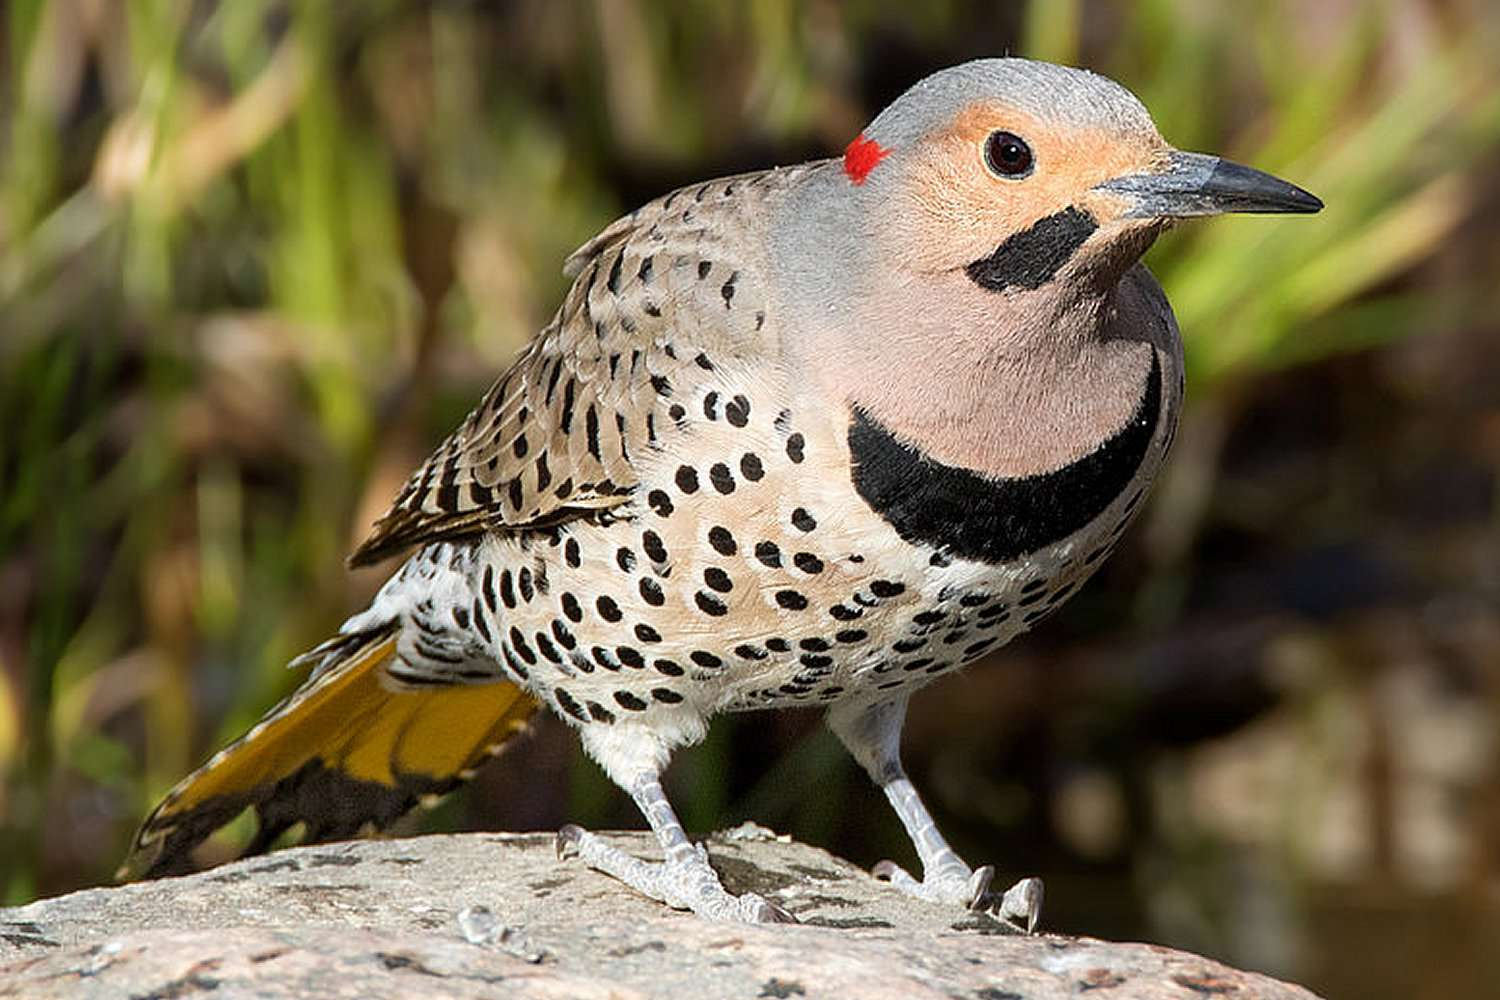 Northern Flicker, el pájaro estatal de Alabama, de pie sobre una repisa